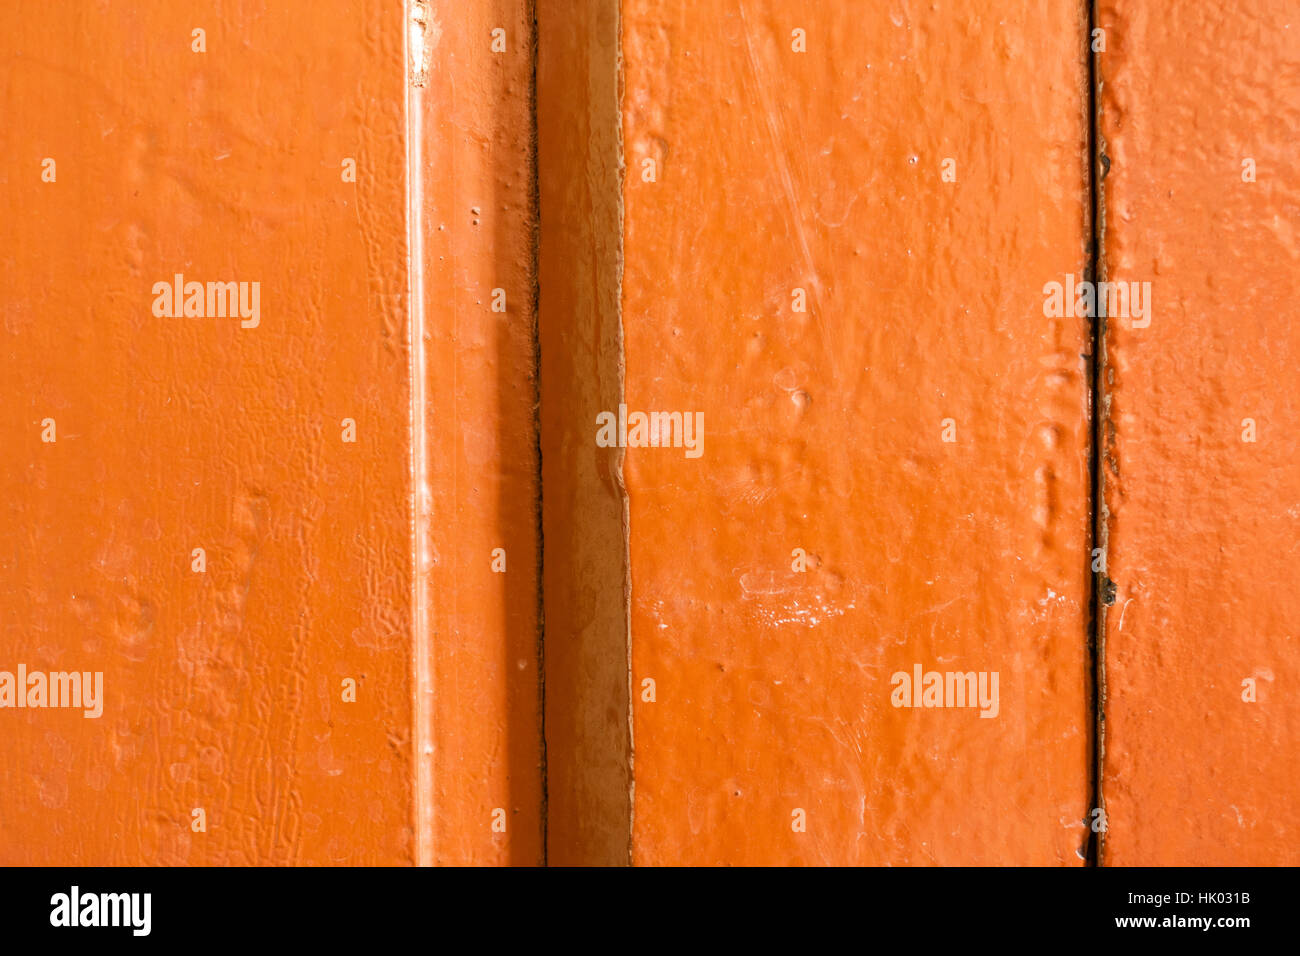 Old worn out wooden planks painted orange brown. - Stock Image